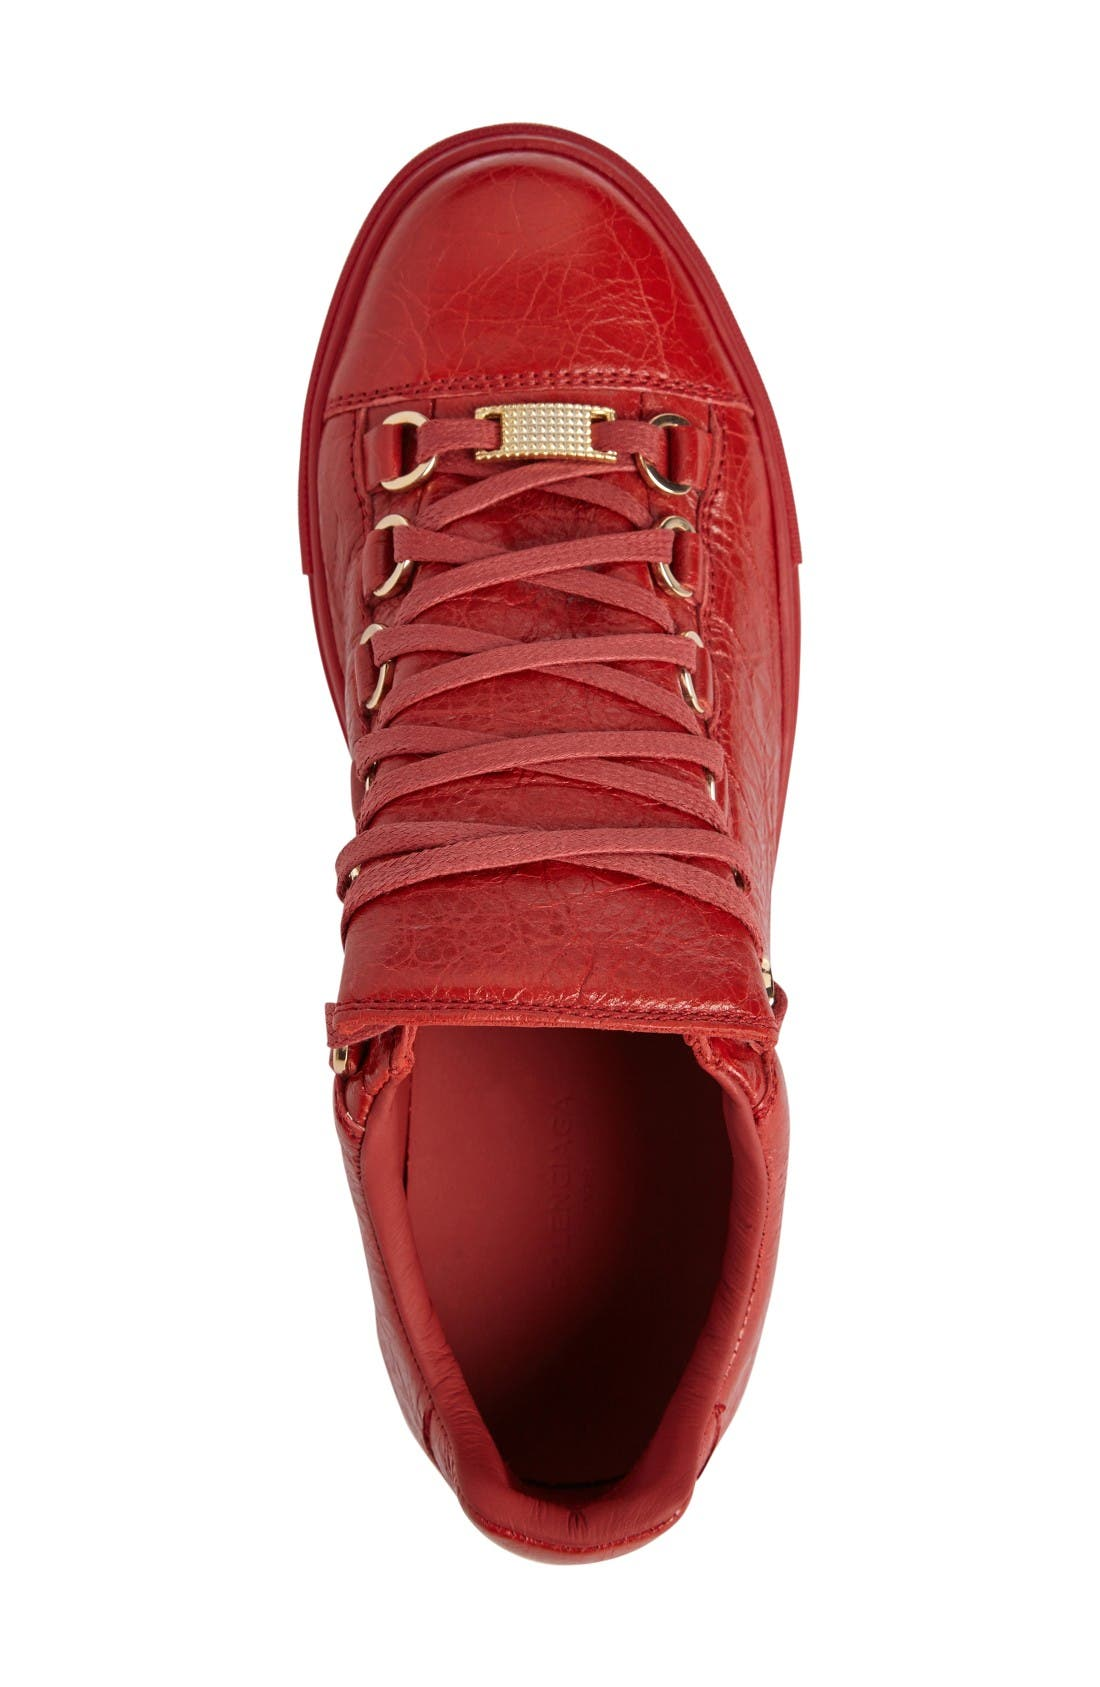 Low Top Sneaker,                             Alternate thumbnail 3, color,                             Red Leather